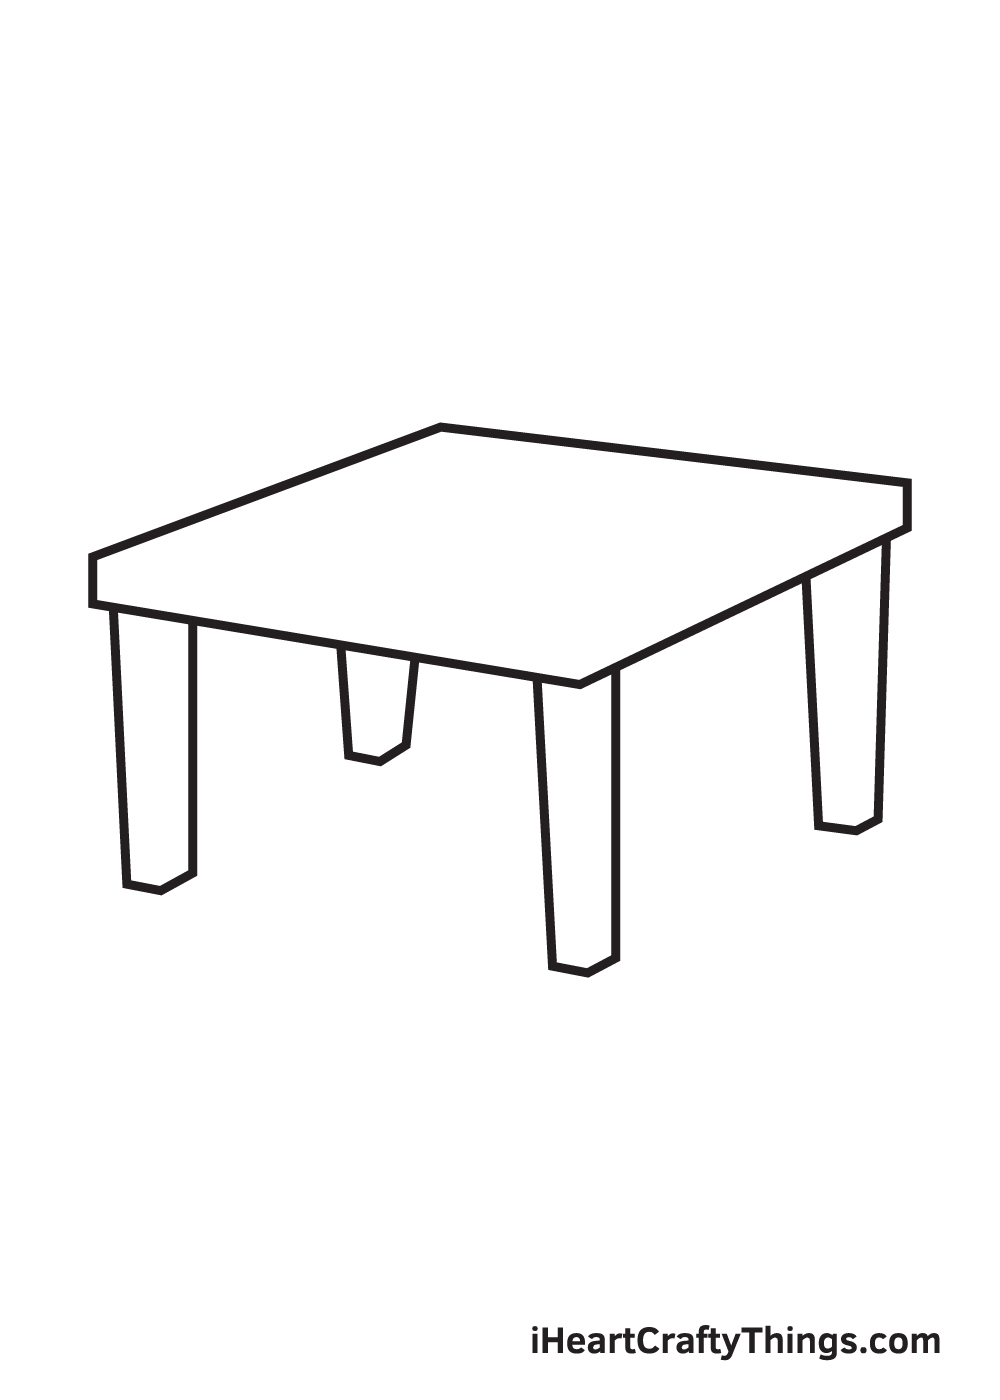 table drawing step 6